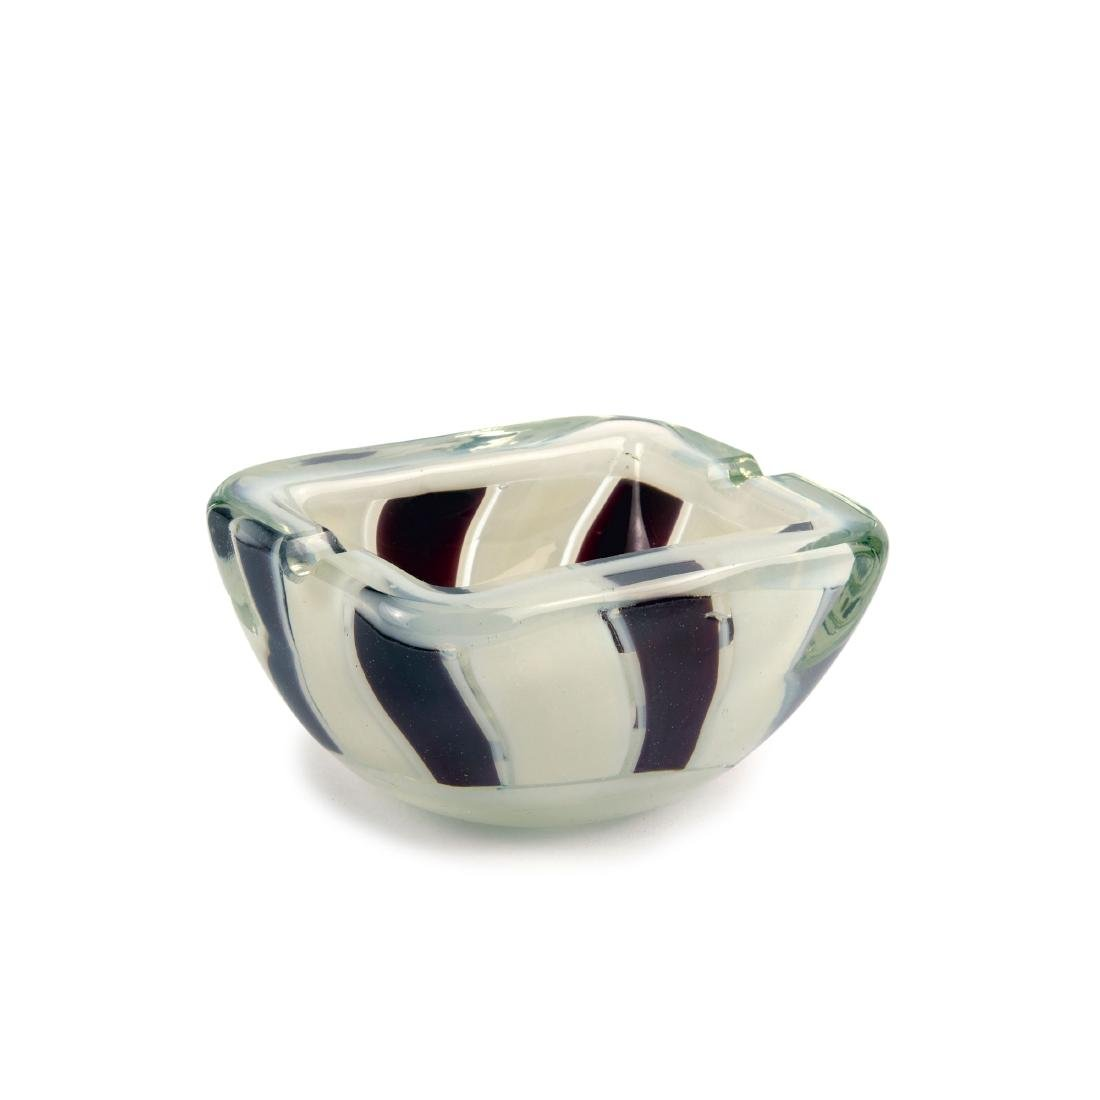 'Pezzati' ashtray, c1956